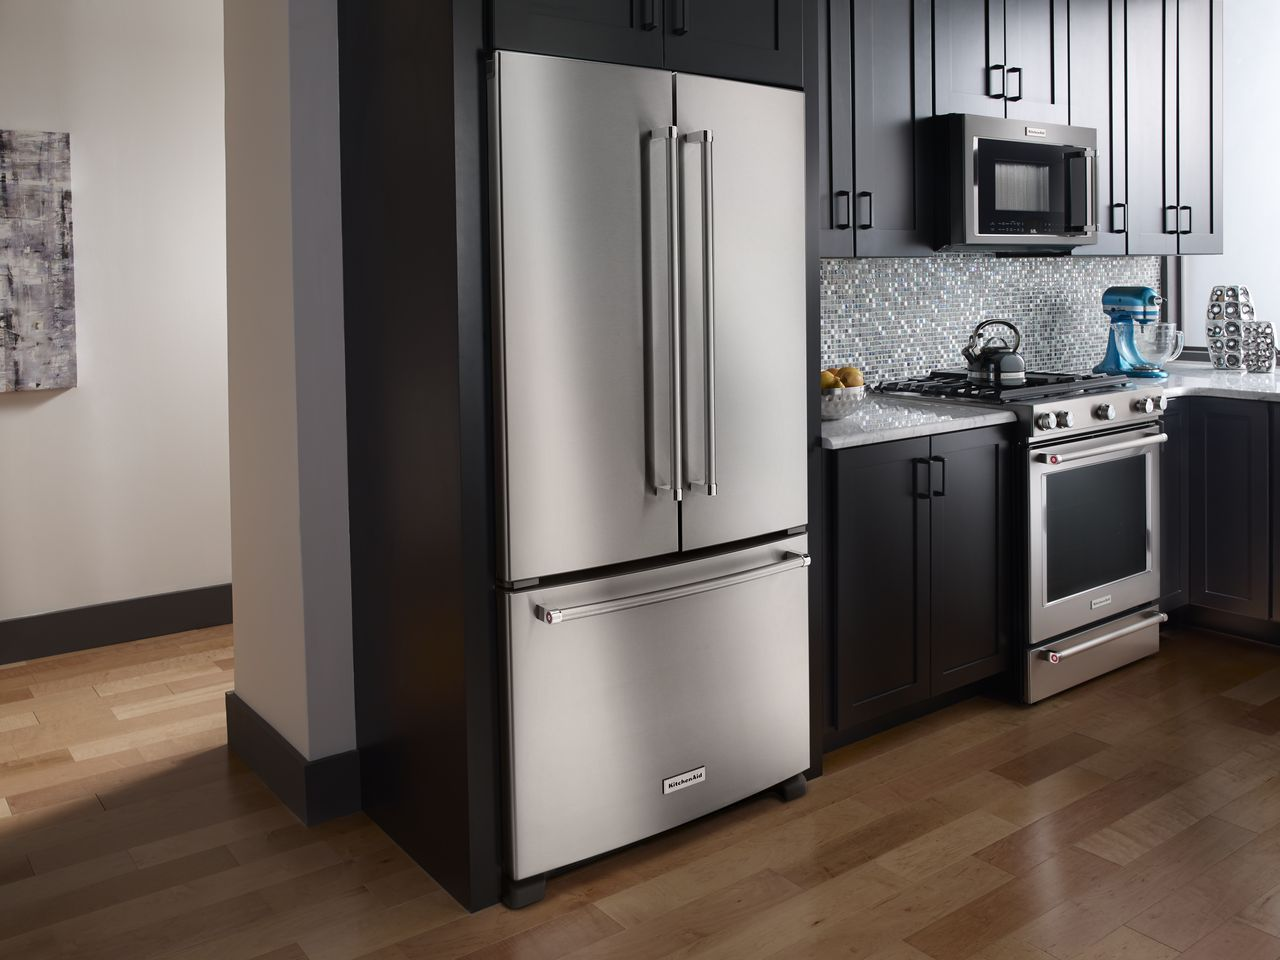 Kitchenaid stainless french door refrigerator krfc302ess roll over image to zoom in rubansaba